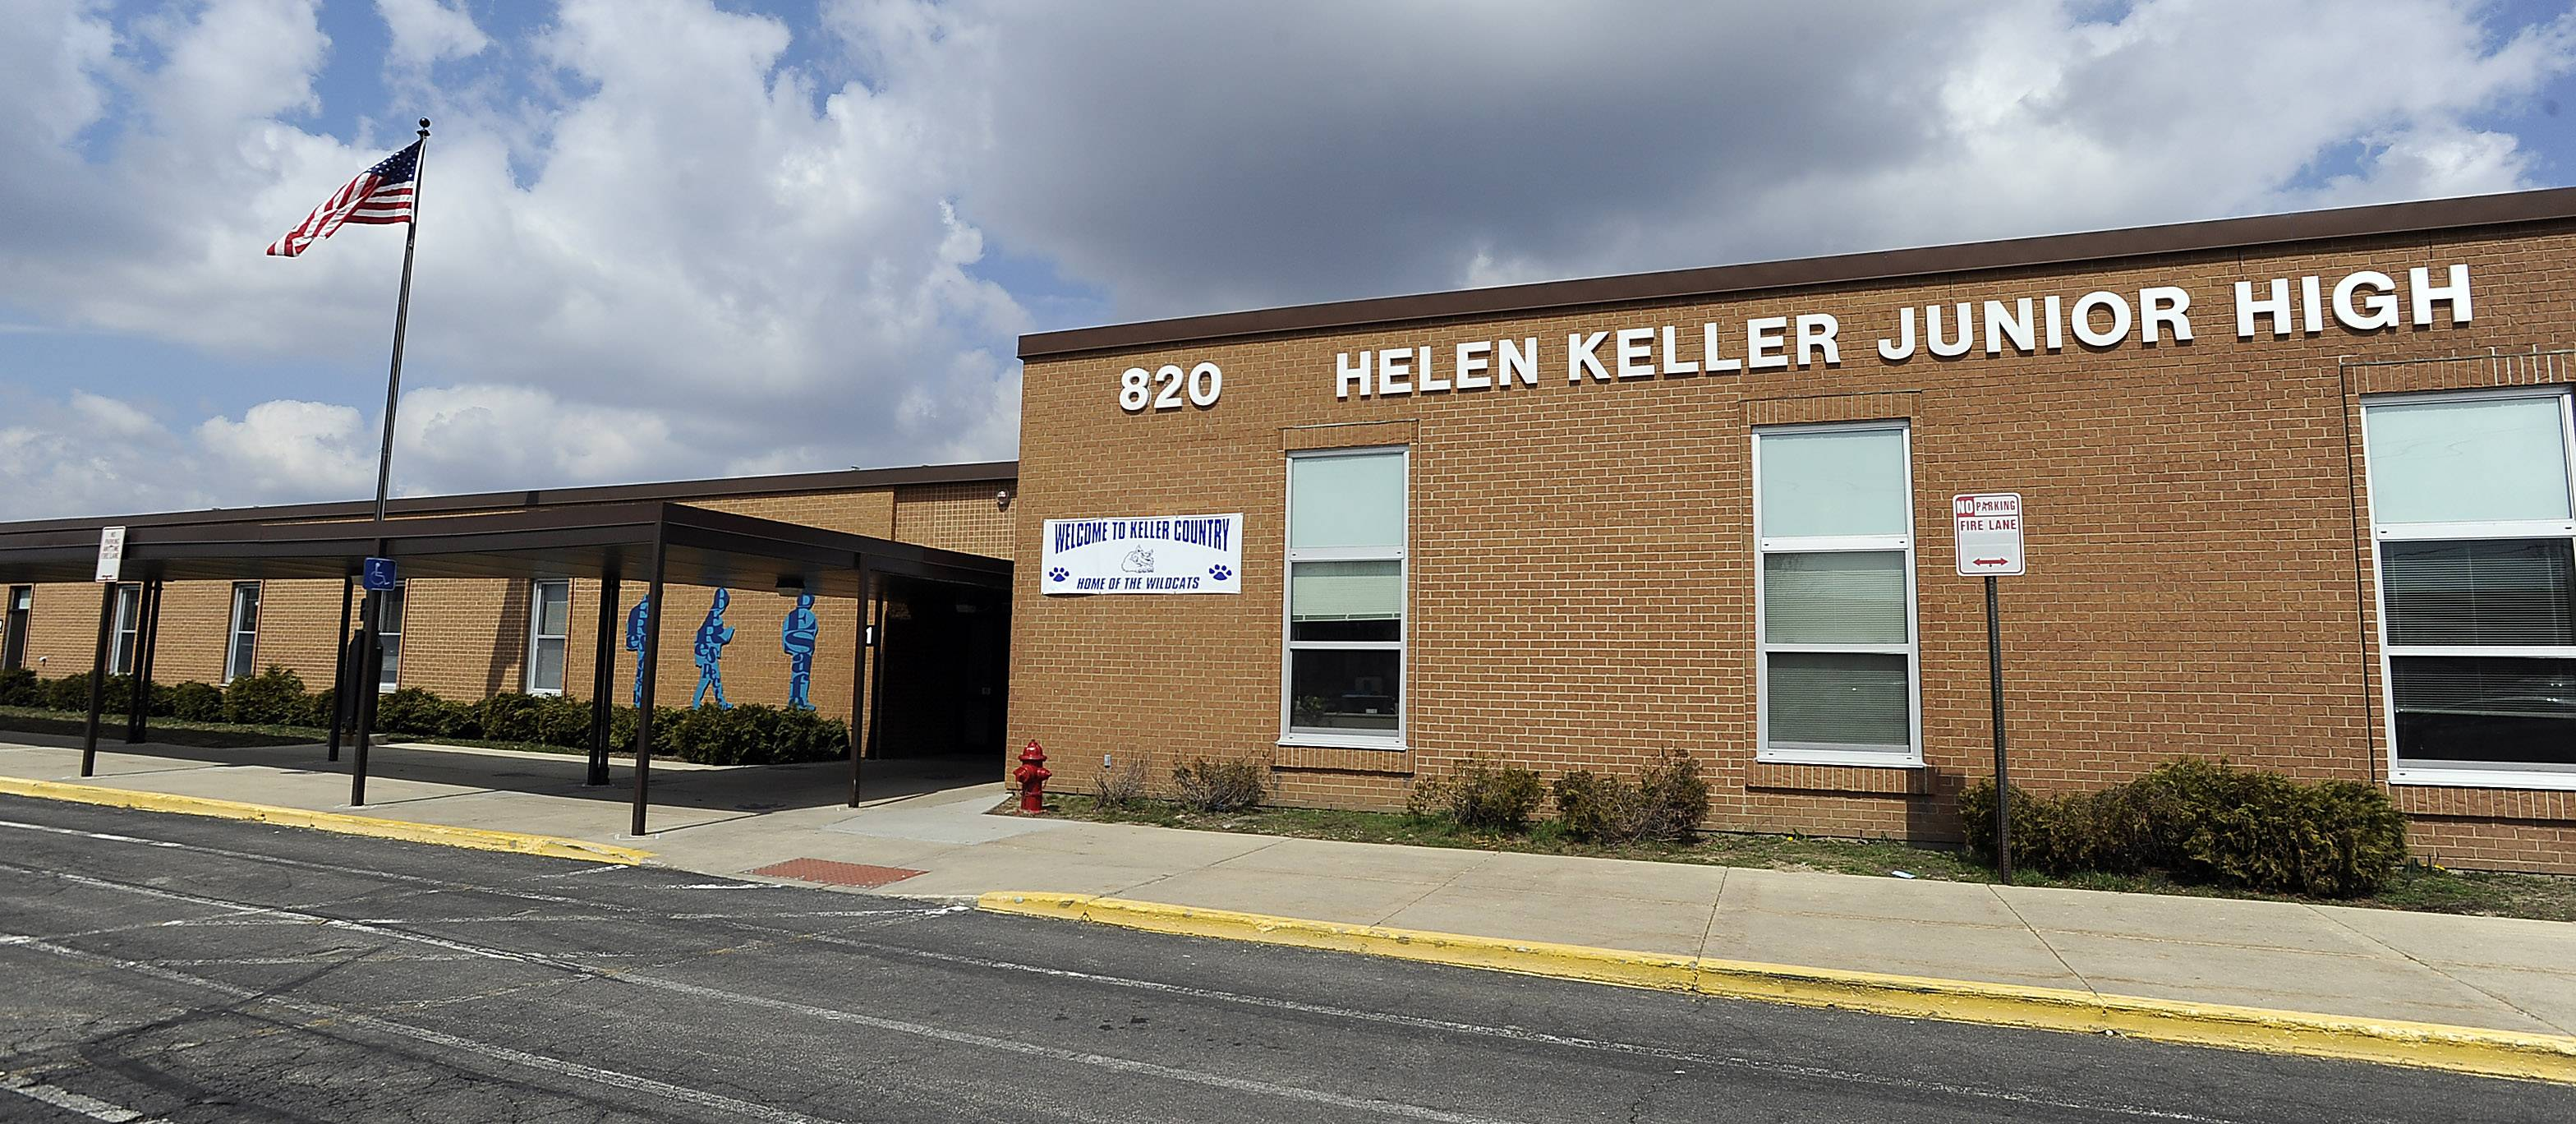 Keller Junior High School in Schaumburg houses some of Schaumburg Township Elementary District 54's early childhood programs. The district is moving all of its early childhood programs under one roof next year as part of a $19.5 million project.